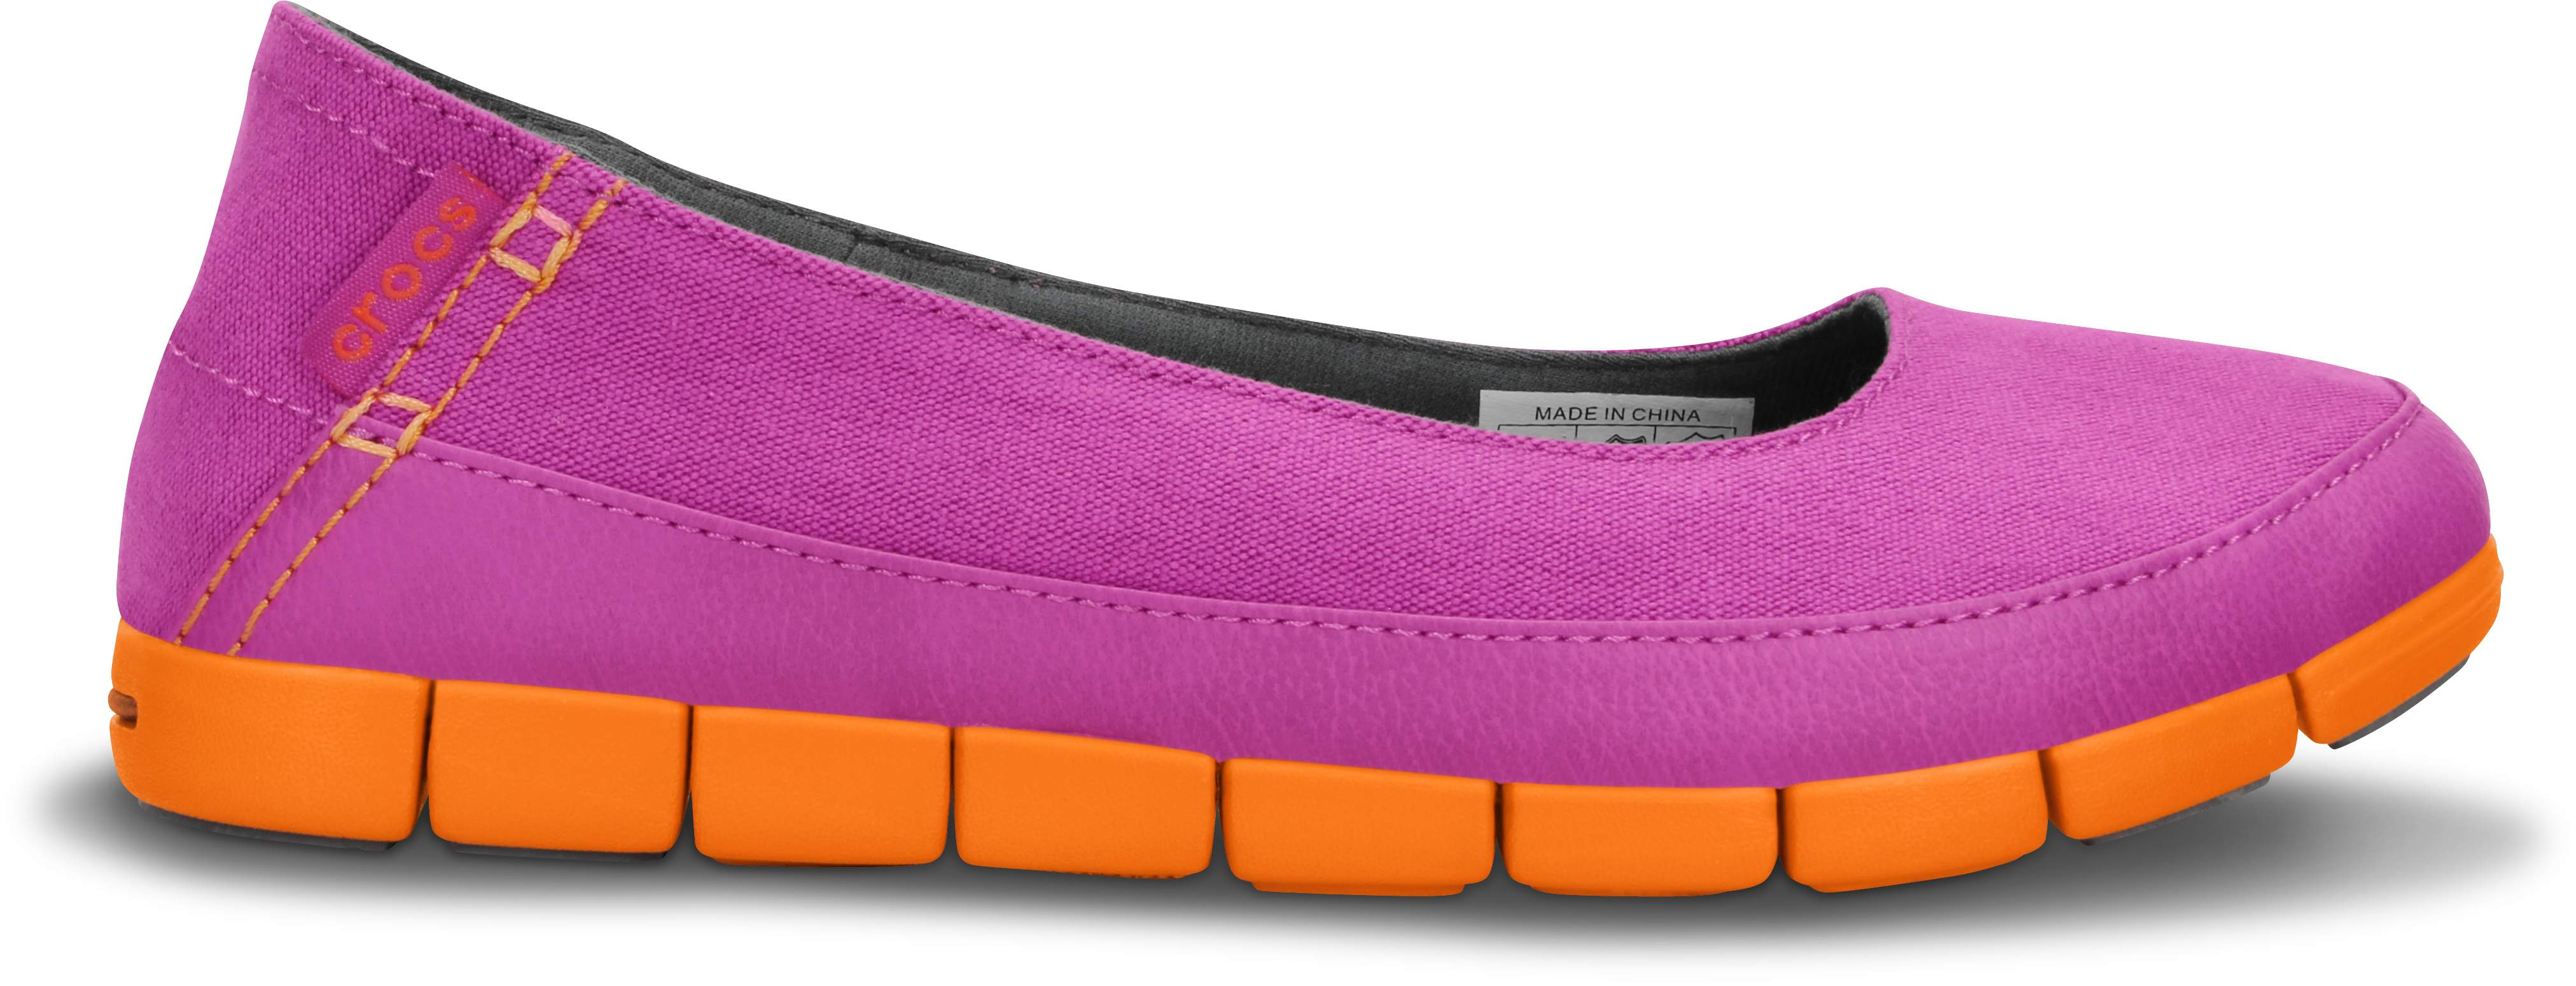 Women's<br /> Stretch Sole Flat